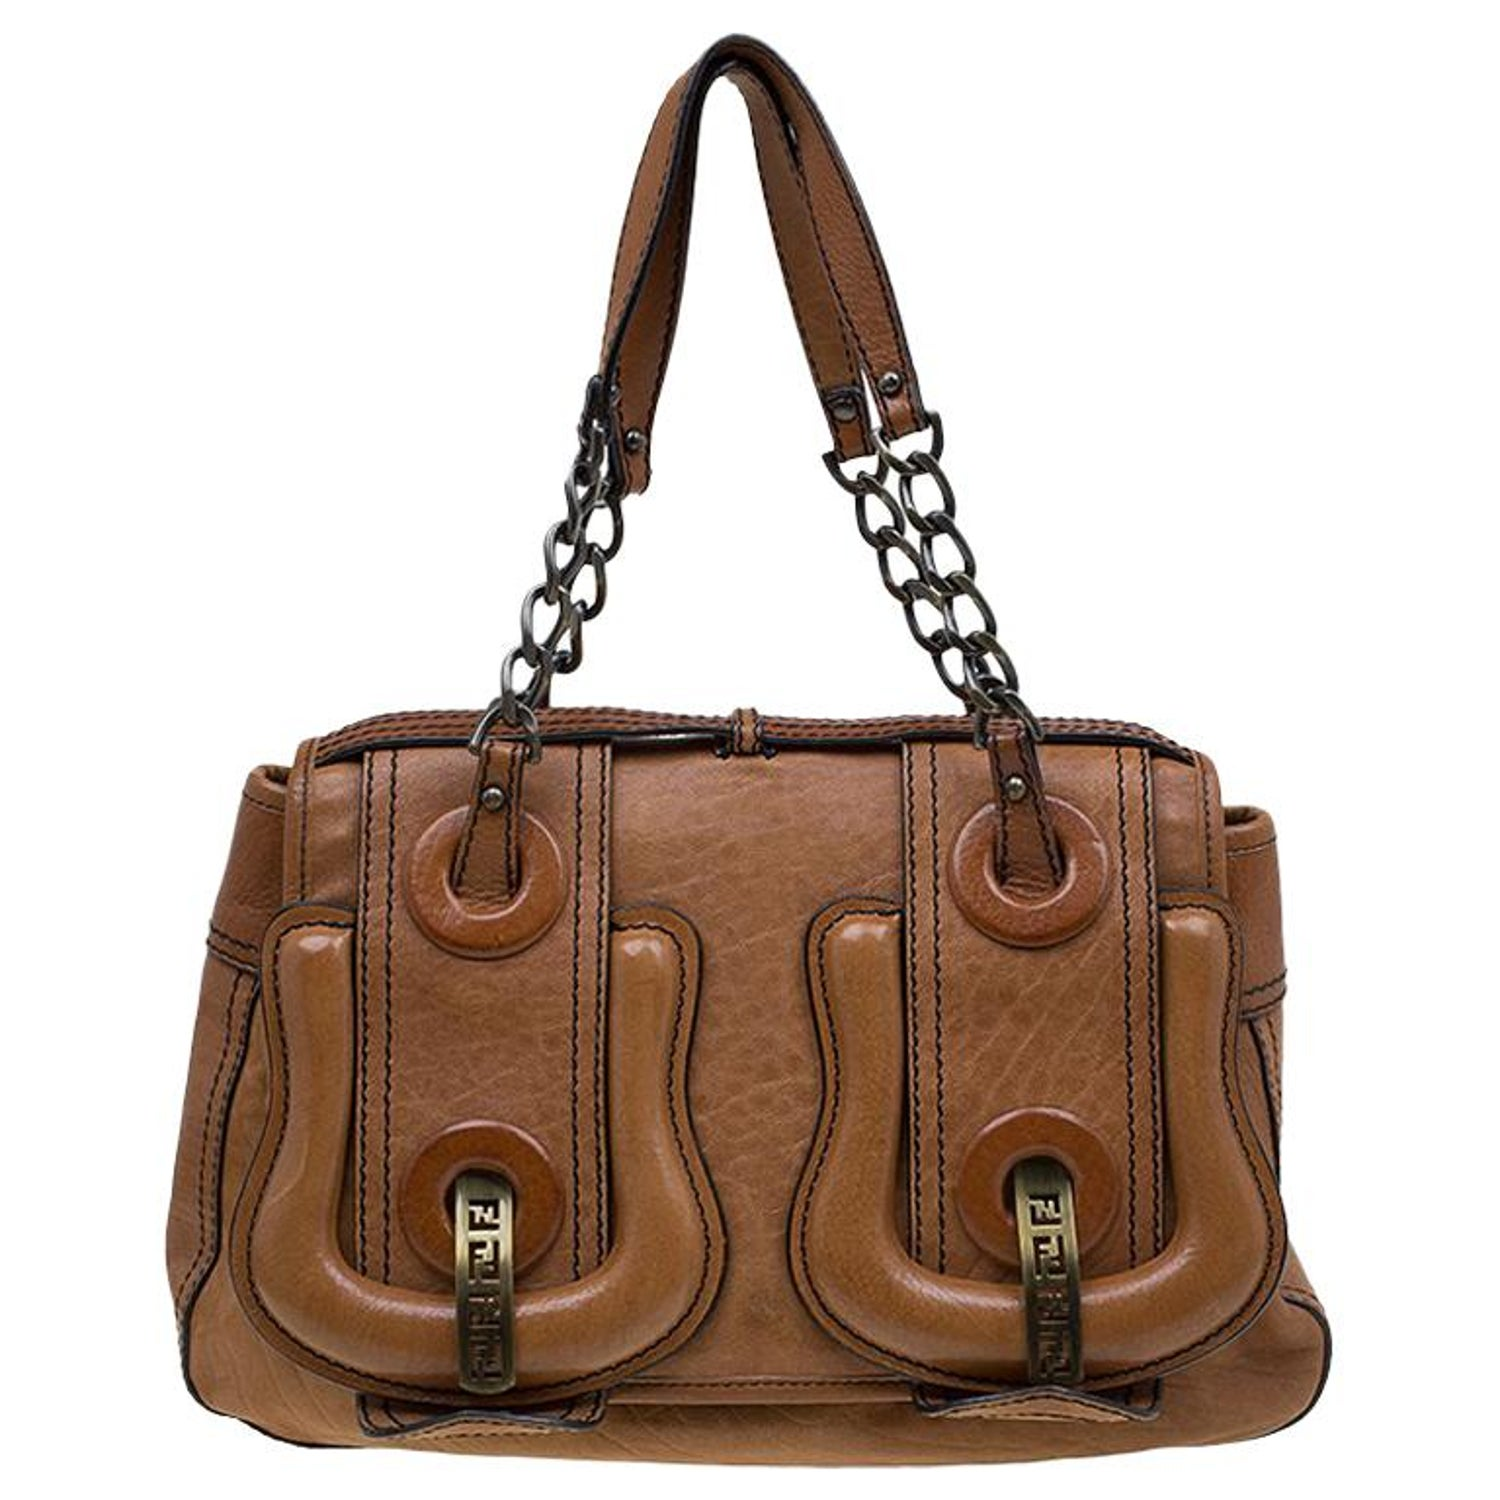 71f28d16f0 Fendi Brown Leather Trim B Tote For Sale at 1stdibs